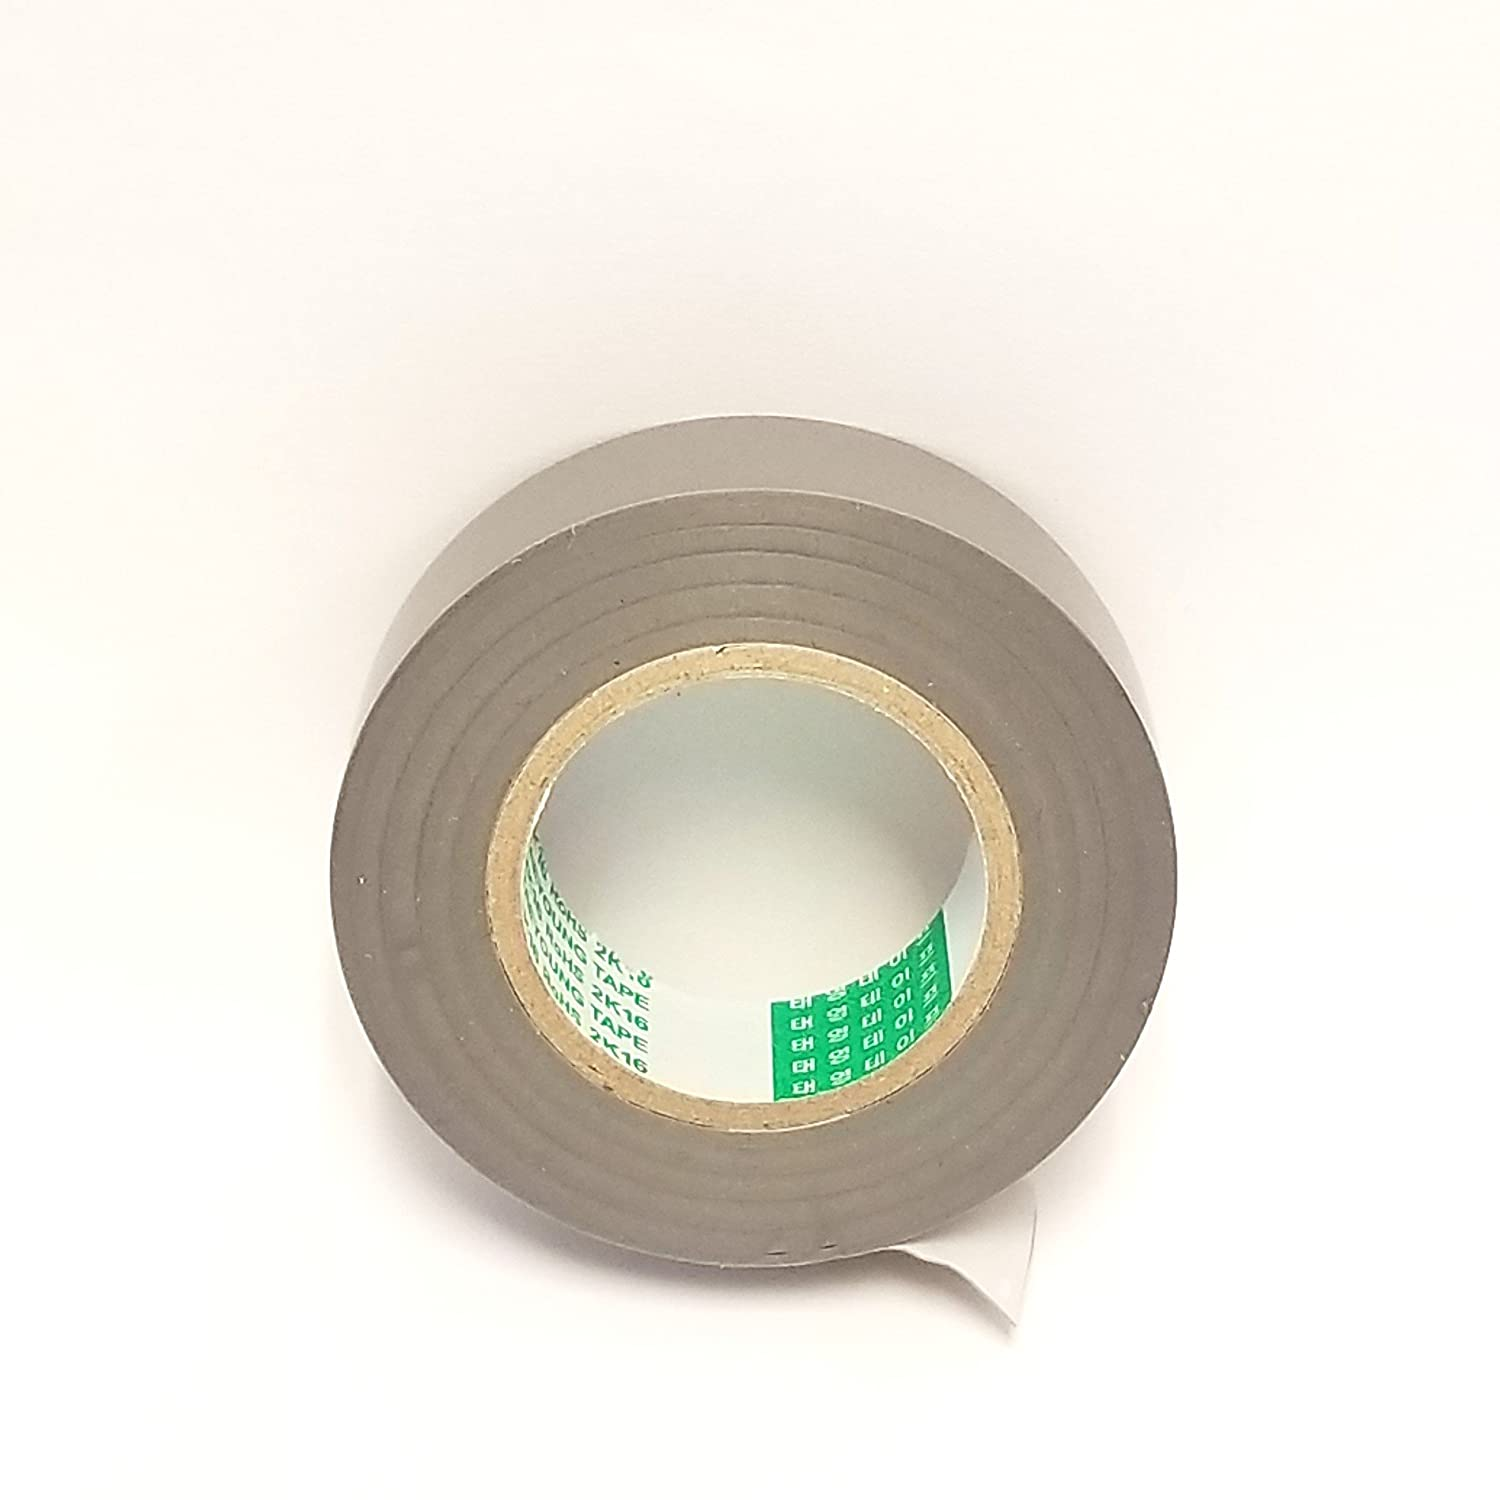 "Amazon.com: TAEYOUNG - H10A 3/4"" by 66' <3 PACK GREY> PVC Wire Harness Tape, GM OEM part (19mmX20m,Adhesive,GREY): Automotive"